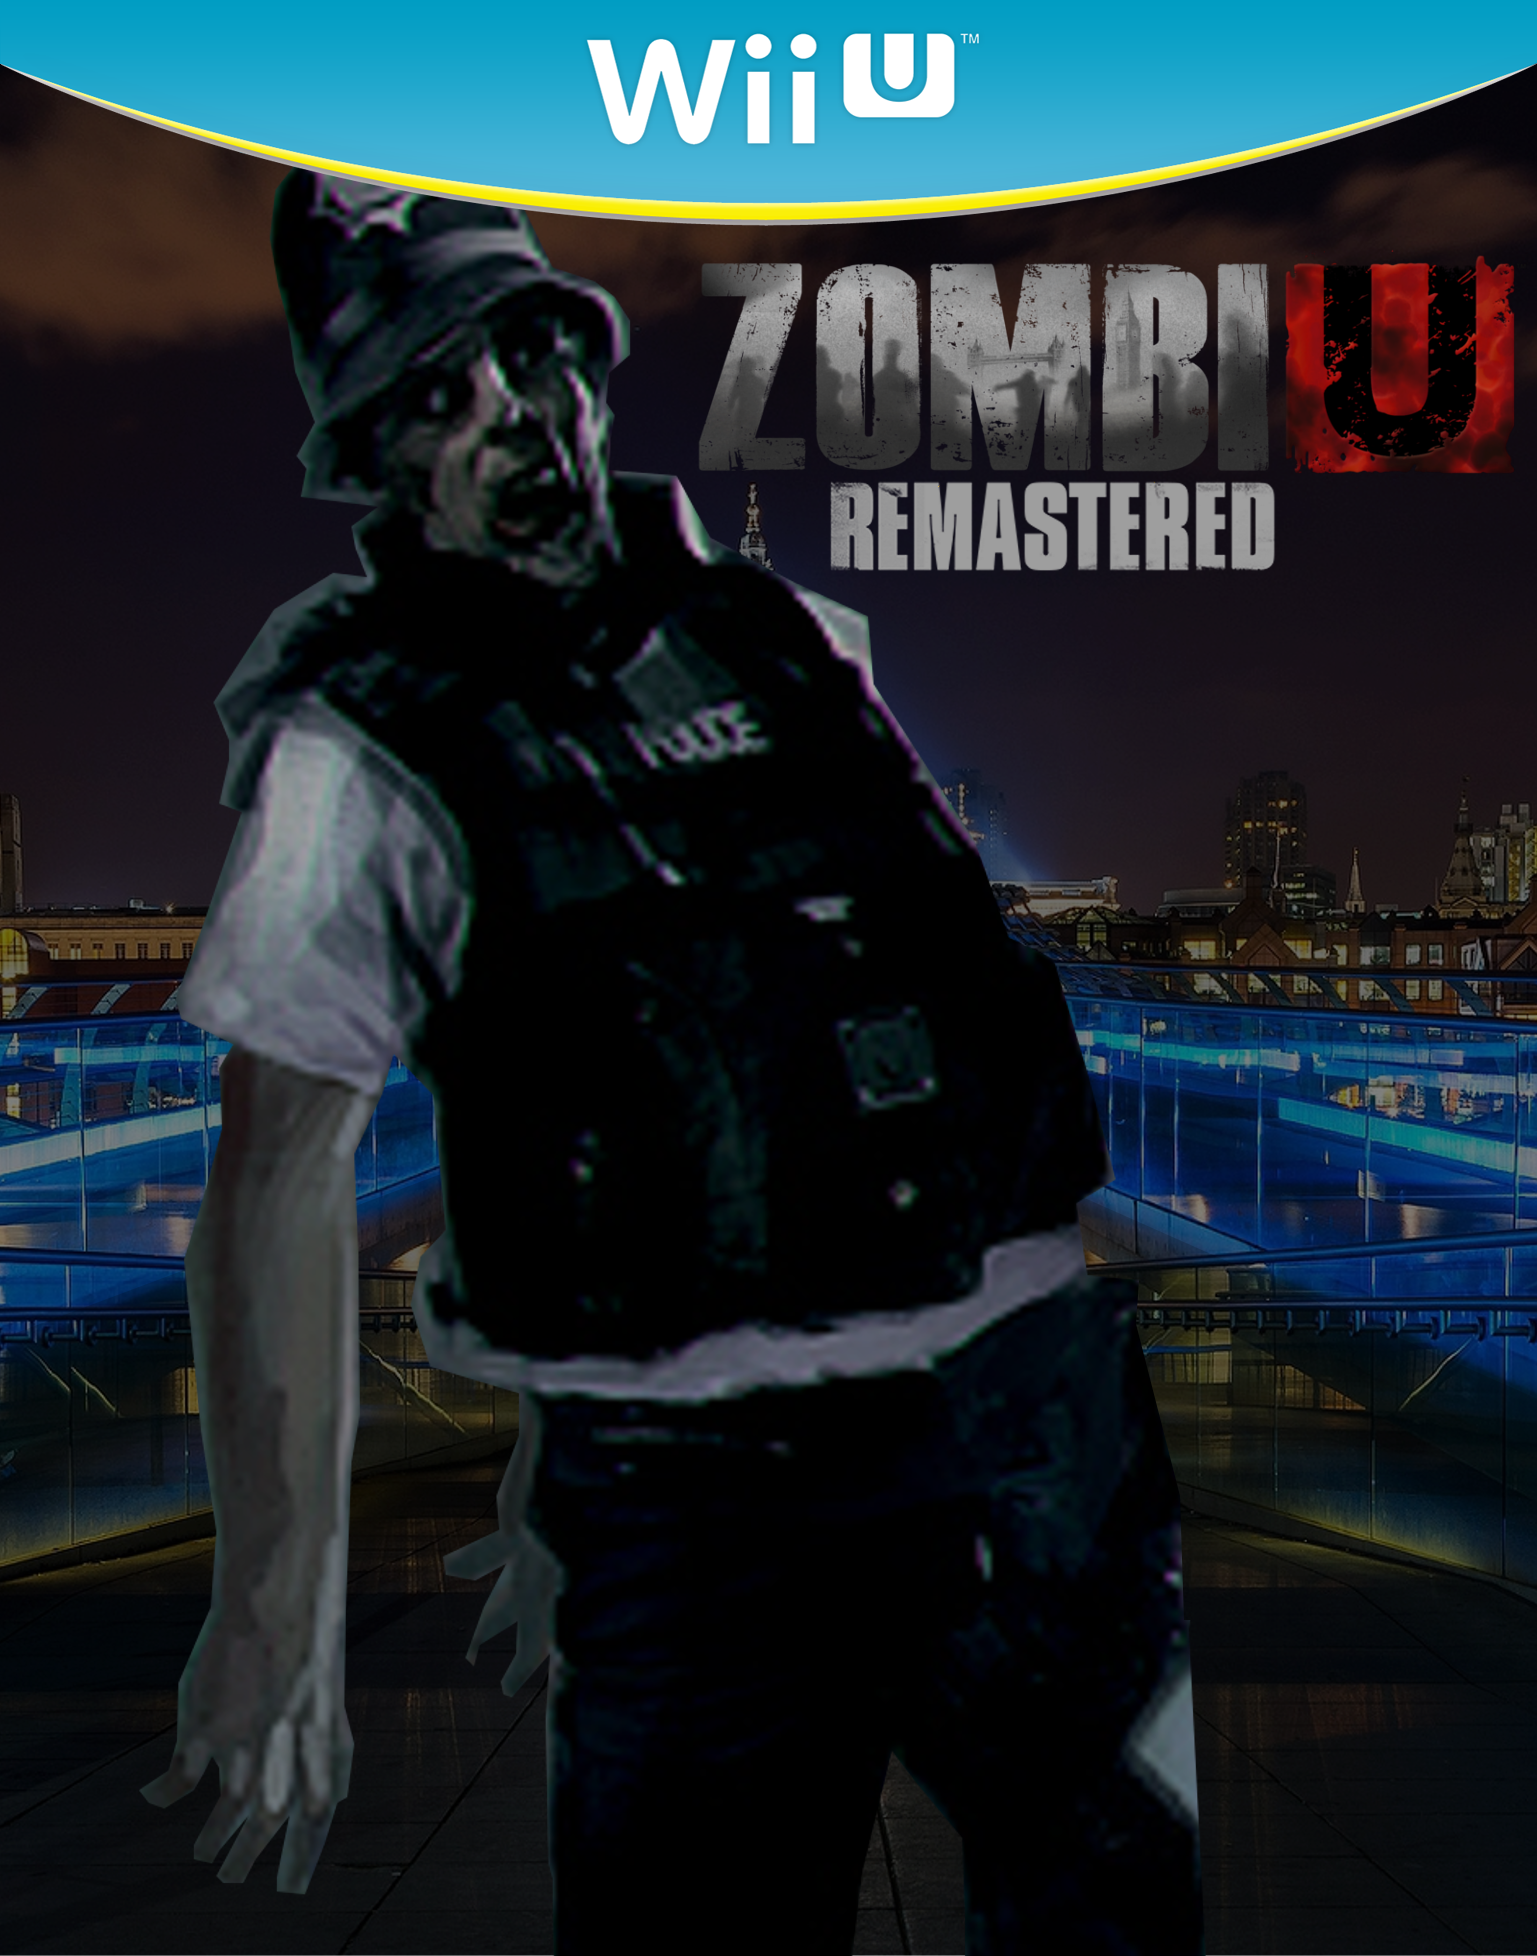 ZombiU Remastered | Fantendo - Nintendo Fanon Wiki | FANDOM powered on shovel knight map, bioshock infinite map, monster hunter 3 ultimate map, the legend of zelda map, the walking dead map, don't starve map, dead island 2 map, state of decay map, cry of fear map, hitman absolution map, donkey kong country returns map, evolve map, lego marvel super heroes map, crackdown 2 map, monster hunter 4 map, teslagrad map, dark souls map, hyrule warriors map, the elder scrolls v: skyrim map, far cry 3 map,